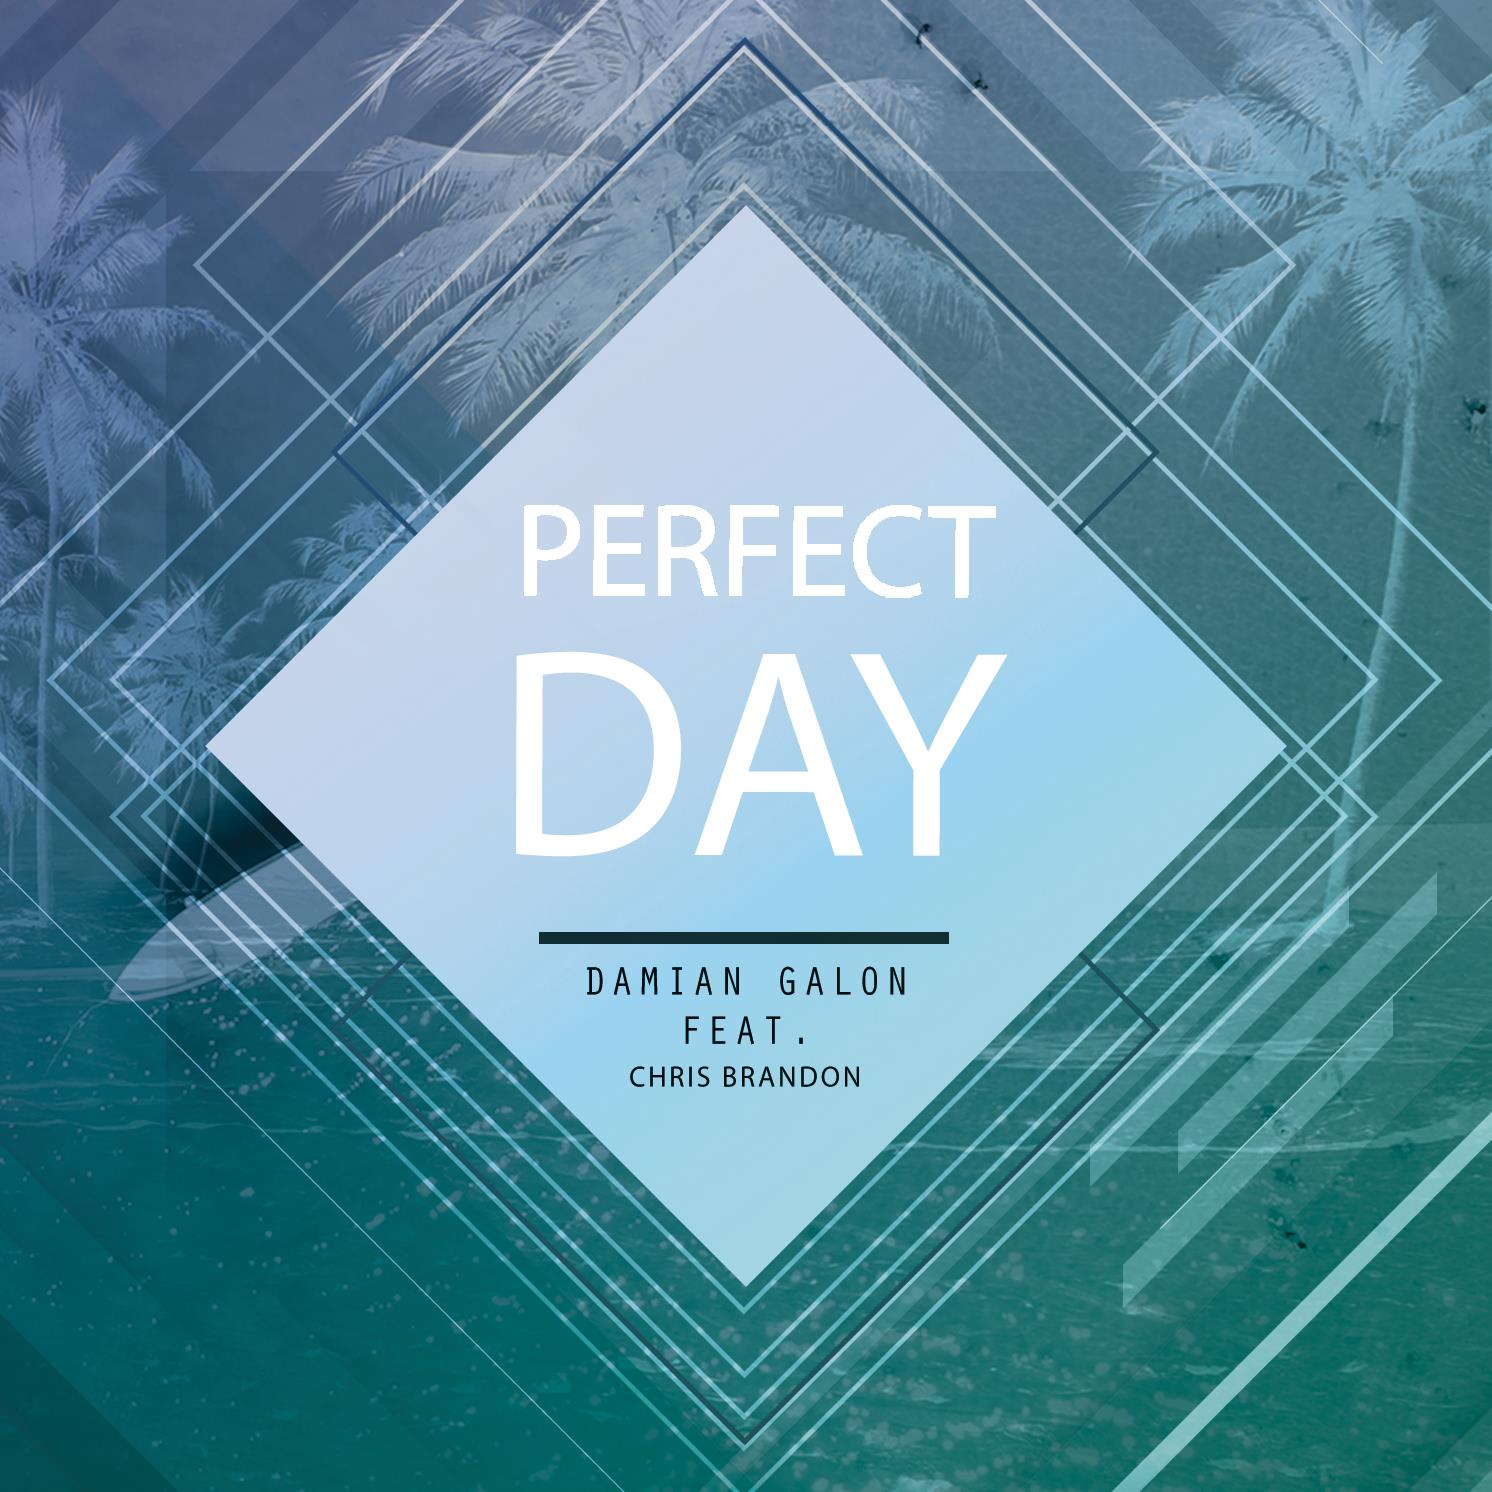 DAMIAN GALON FEAT. CHRIS BRANDON-Perfect Day